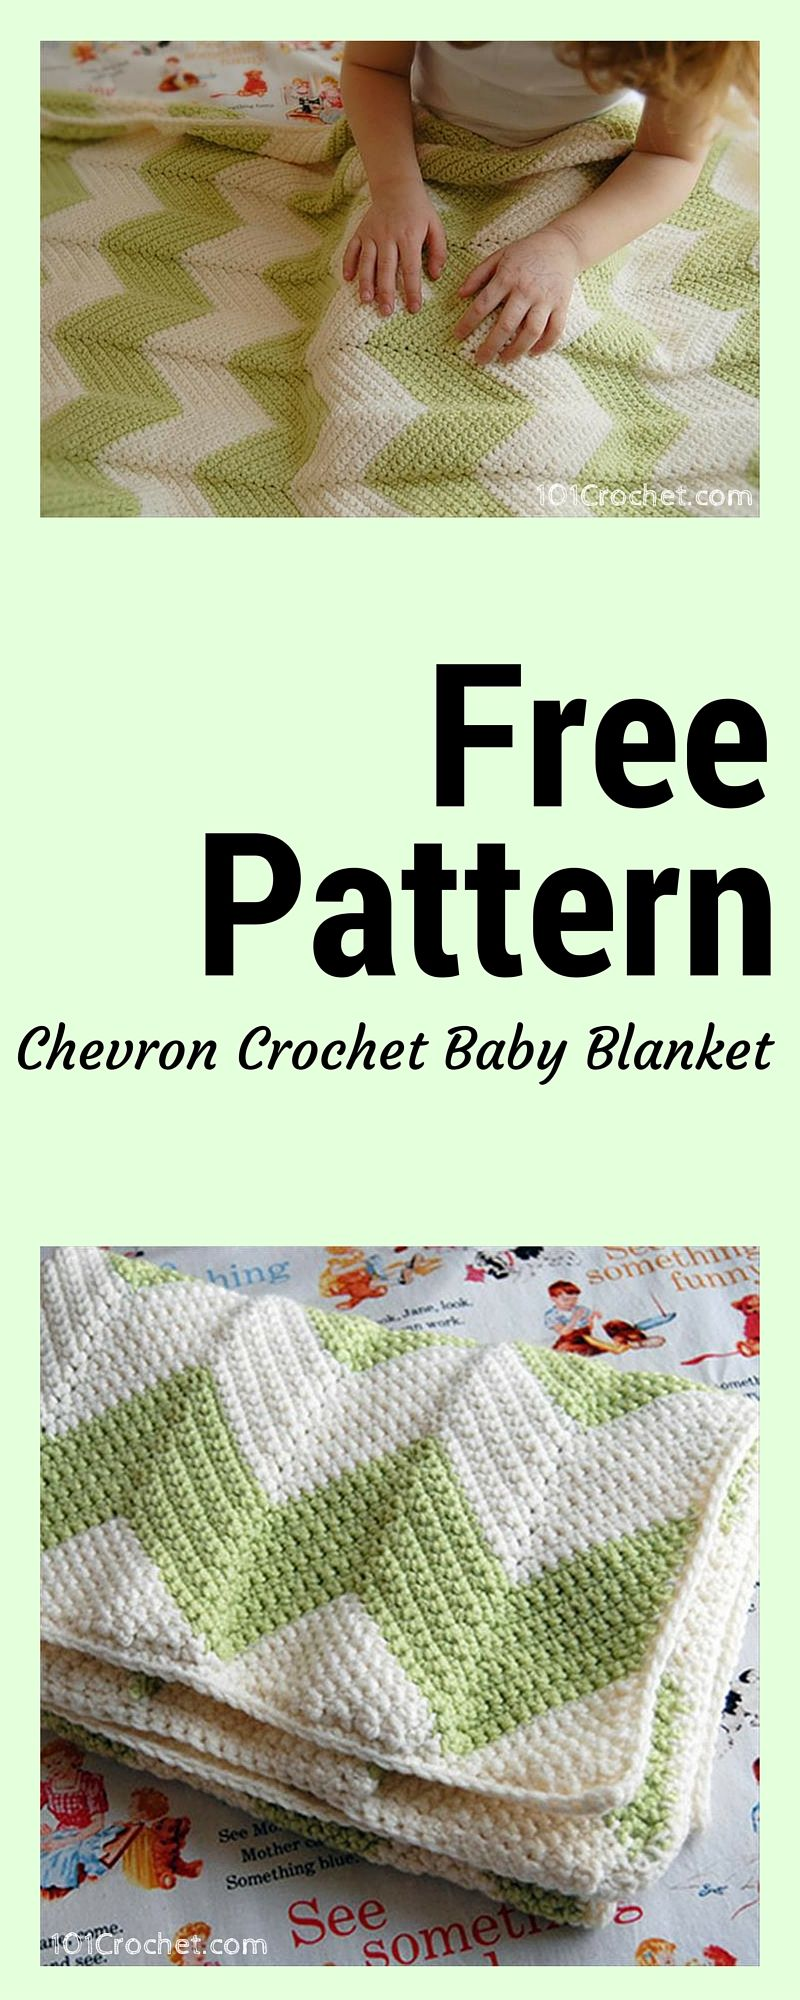 Free Chevron Crochet Baby Blanket Pattern | Crocheted | Pinterest ...